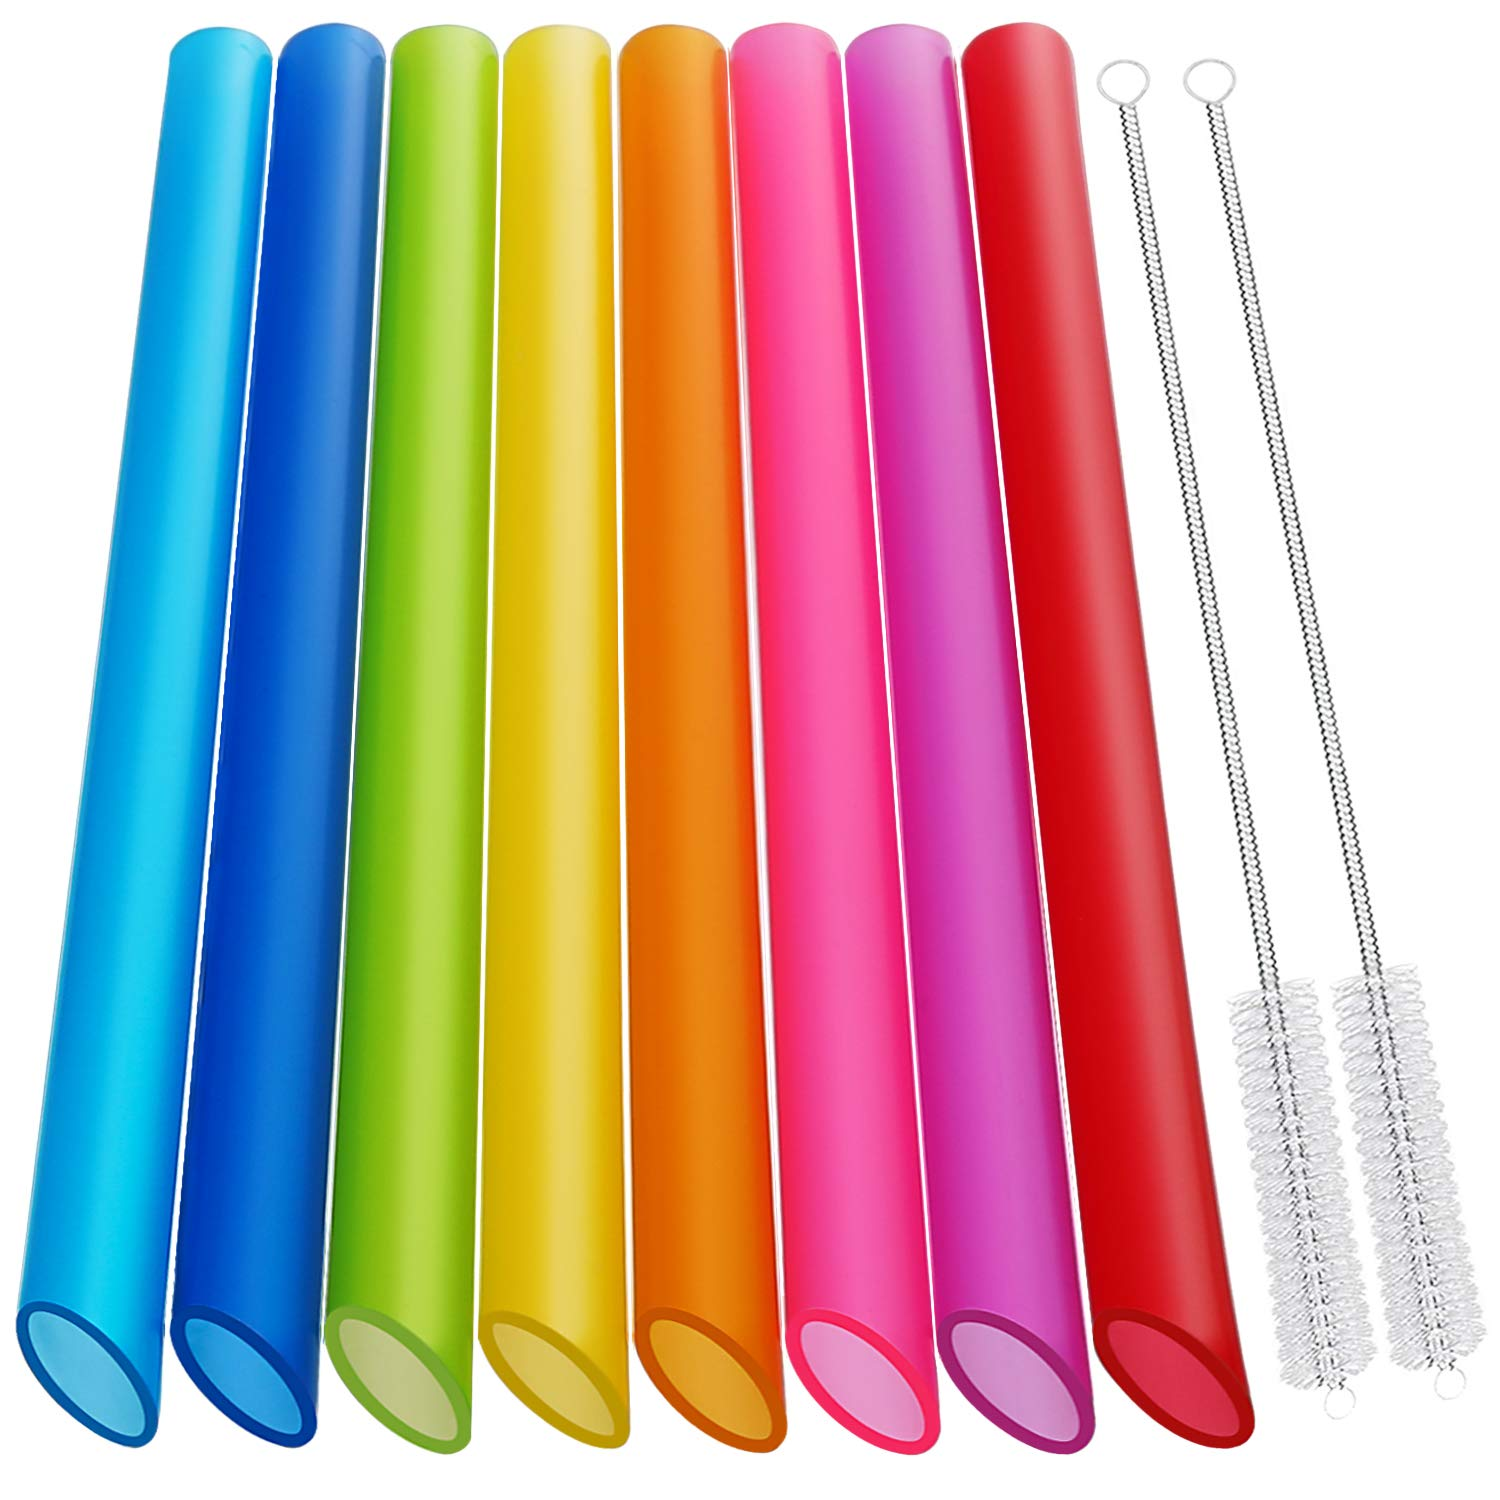 [Angled Tips] 8 Pcs Reusable Boba Straws & Smoothie Straws - Multi Colors Jumbo Wide Reusable Straws, BPA FREE Food-Grade Plastic Straws for Bubble Tea(Tapioca, Boba Pearls), Milkshakes with 2 Brushes